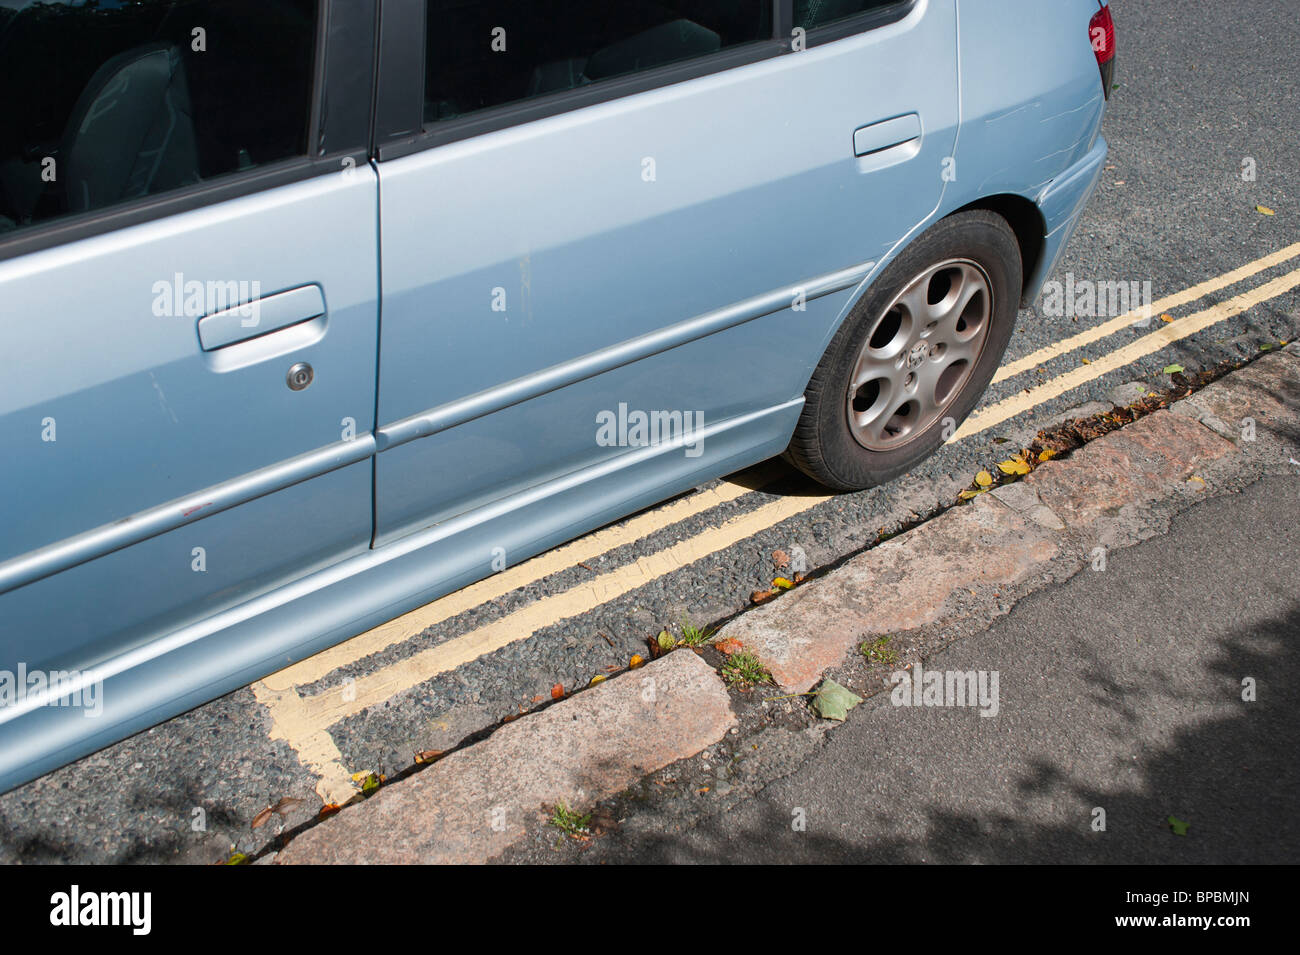 A car parked halfway over double yellow lines, UK 2010 - Stock Image